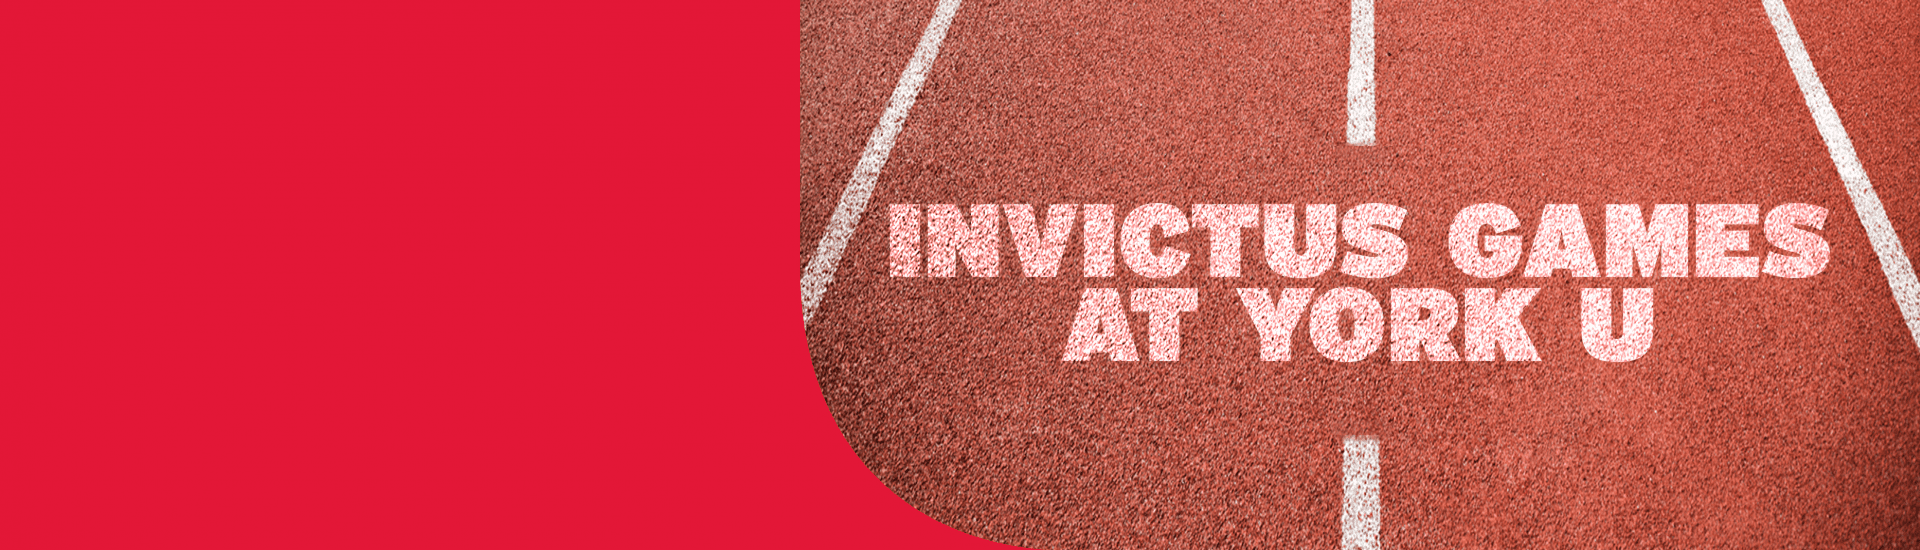 York is proud to be a host venue of the Invictus Games